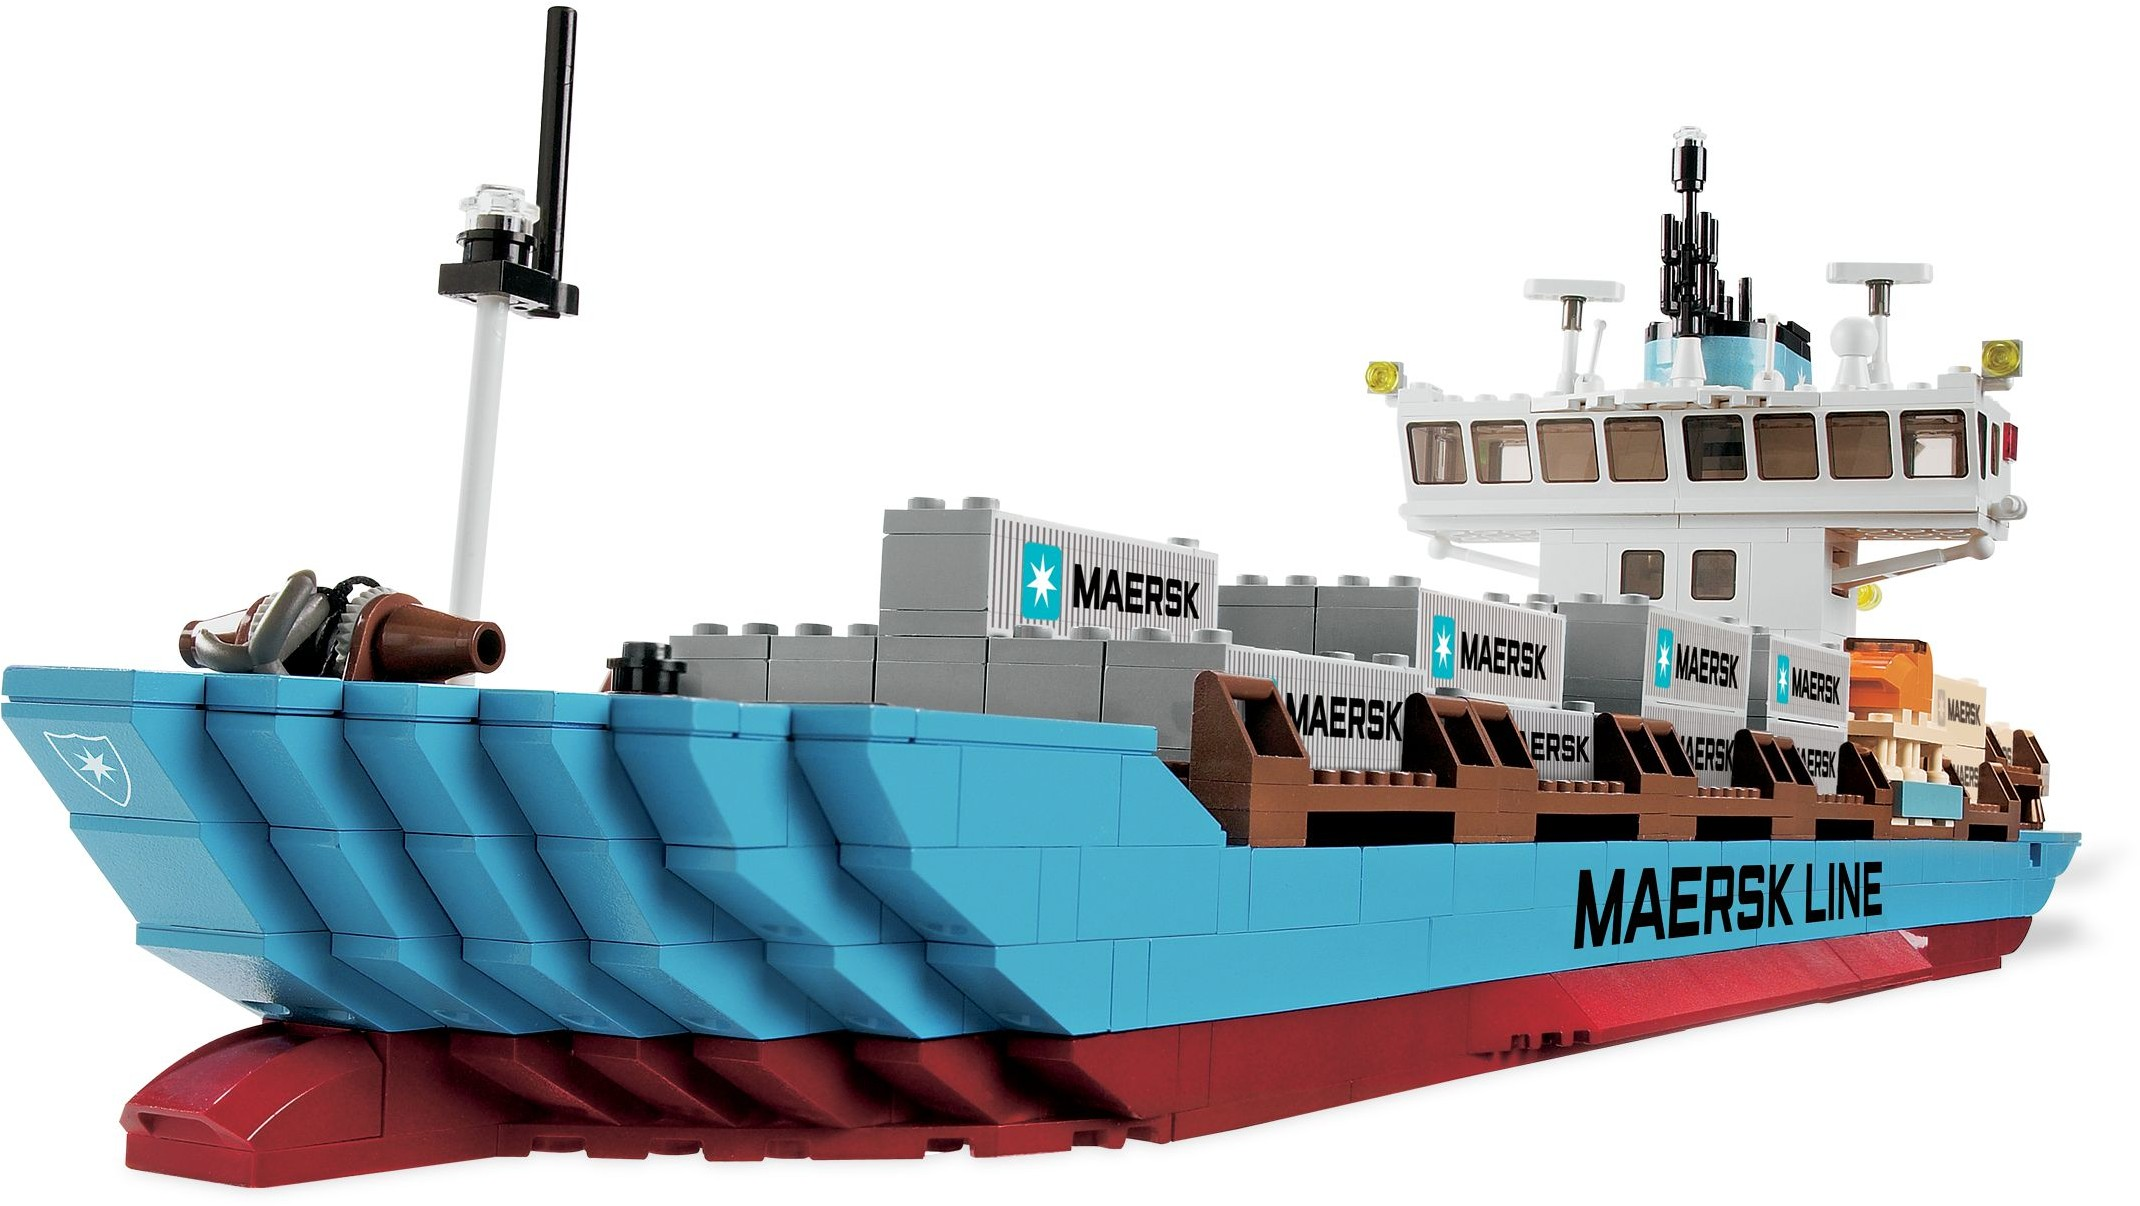 Maersk Line Container Ship - Shipping HD PNG - Cargo Ship PNG HD